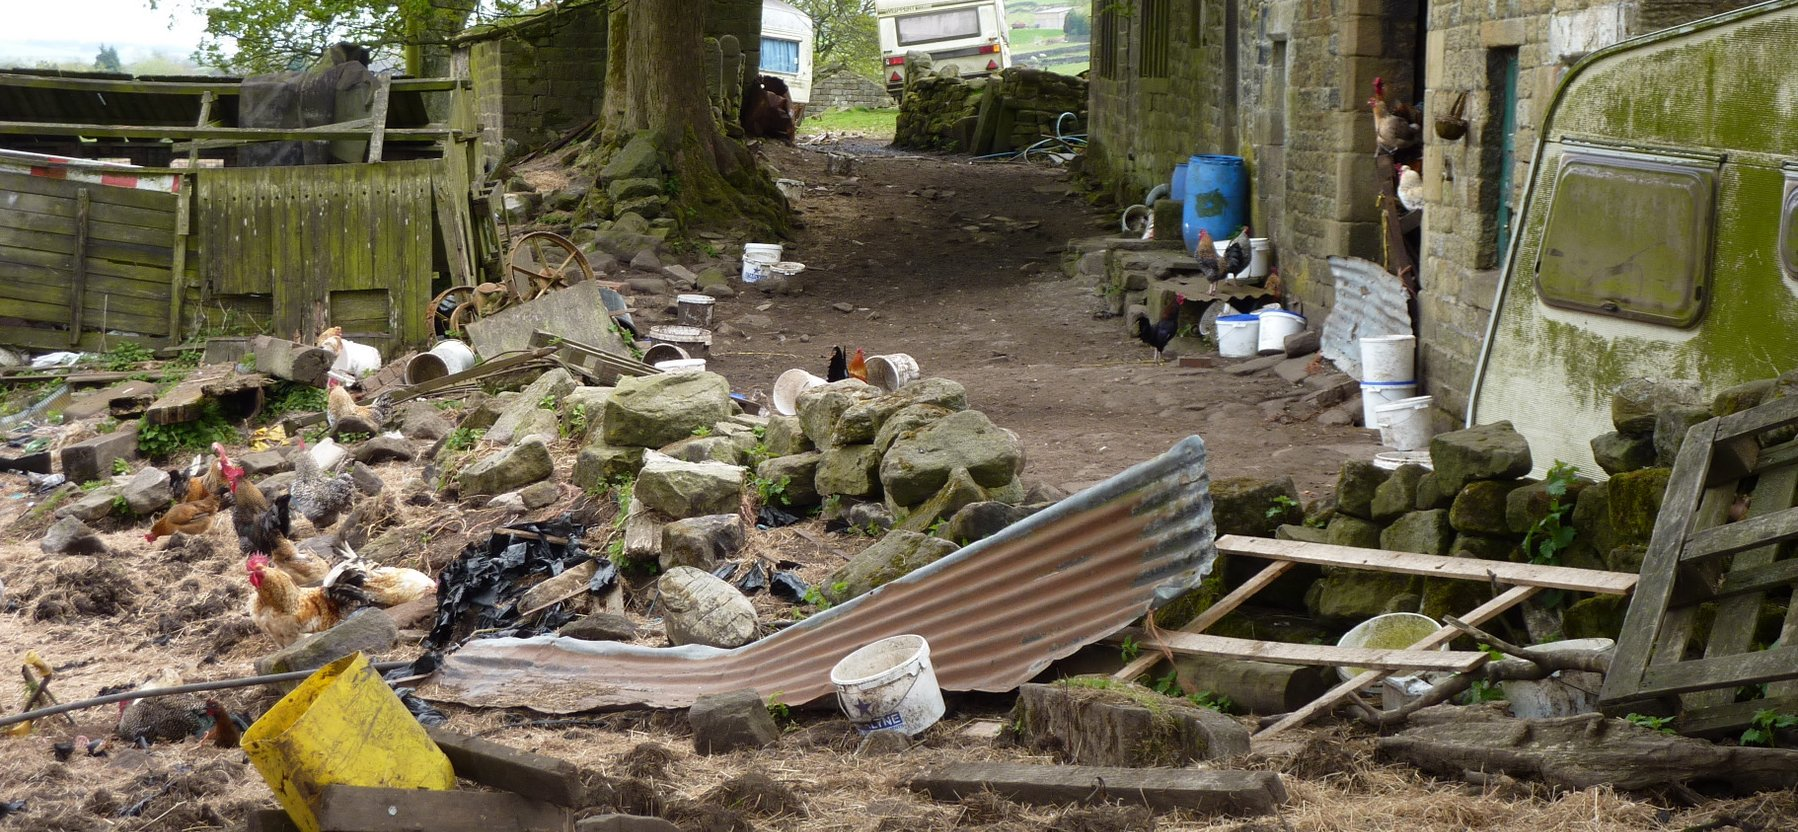 Shameful, litter-strewn yard of a farm on the descent to Ponden